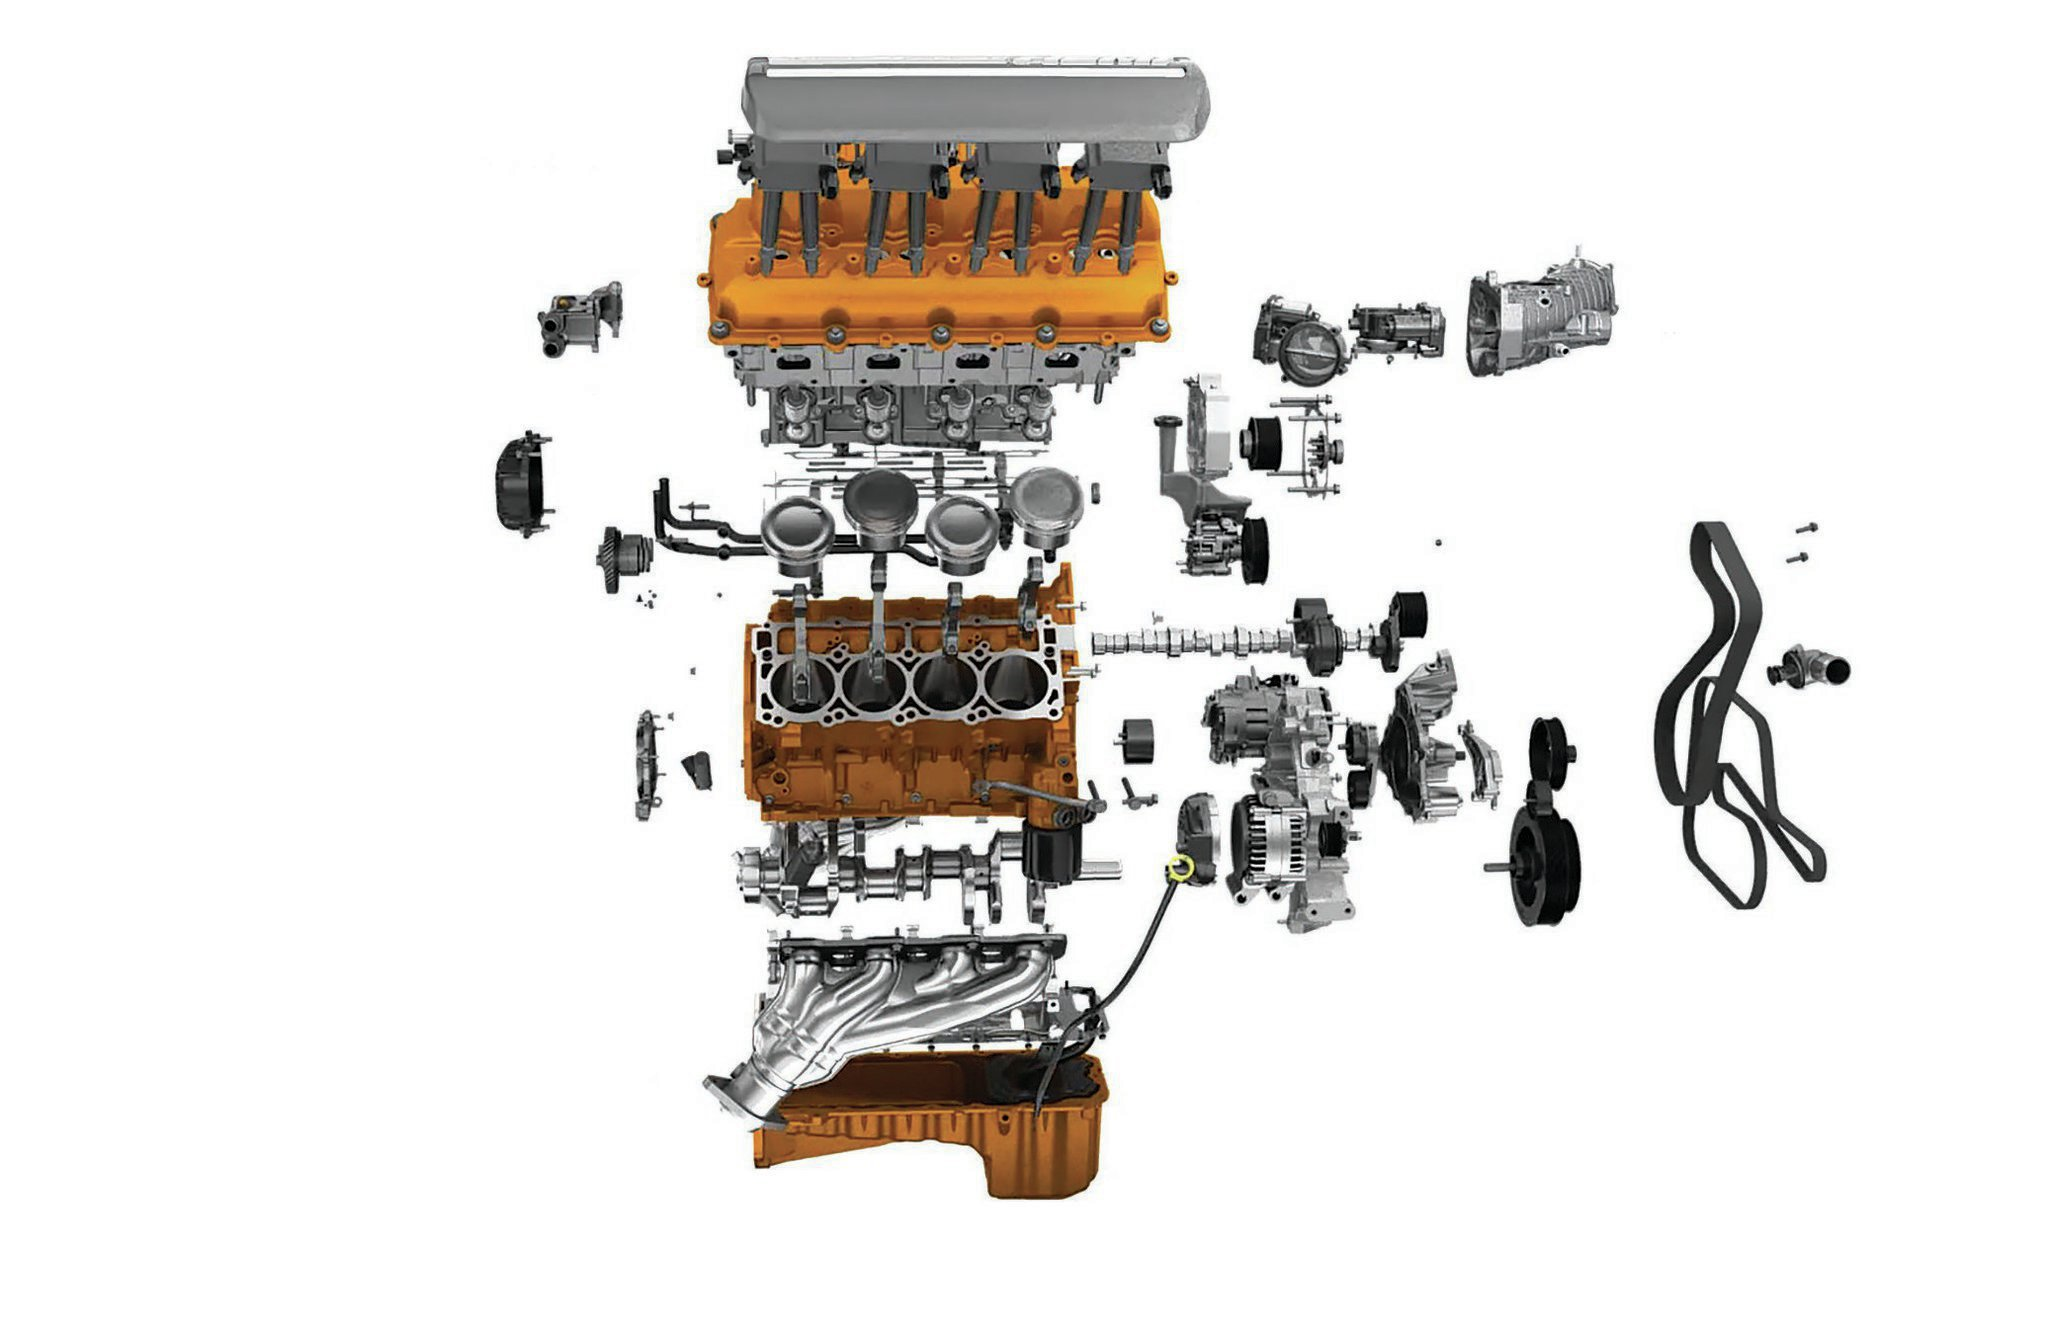 According to Chrysler, 91 percent of Hellcat's components are new compared to the 6.4L Hemi. Carefully studying this cutaway reveals a concave dish profile on the piston crowns.